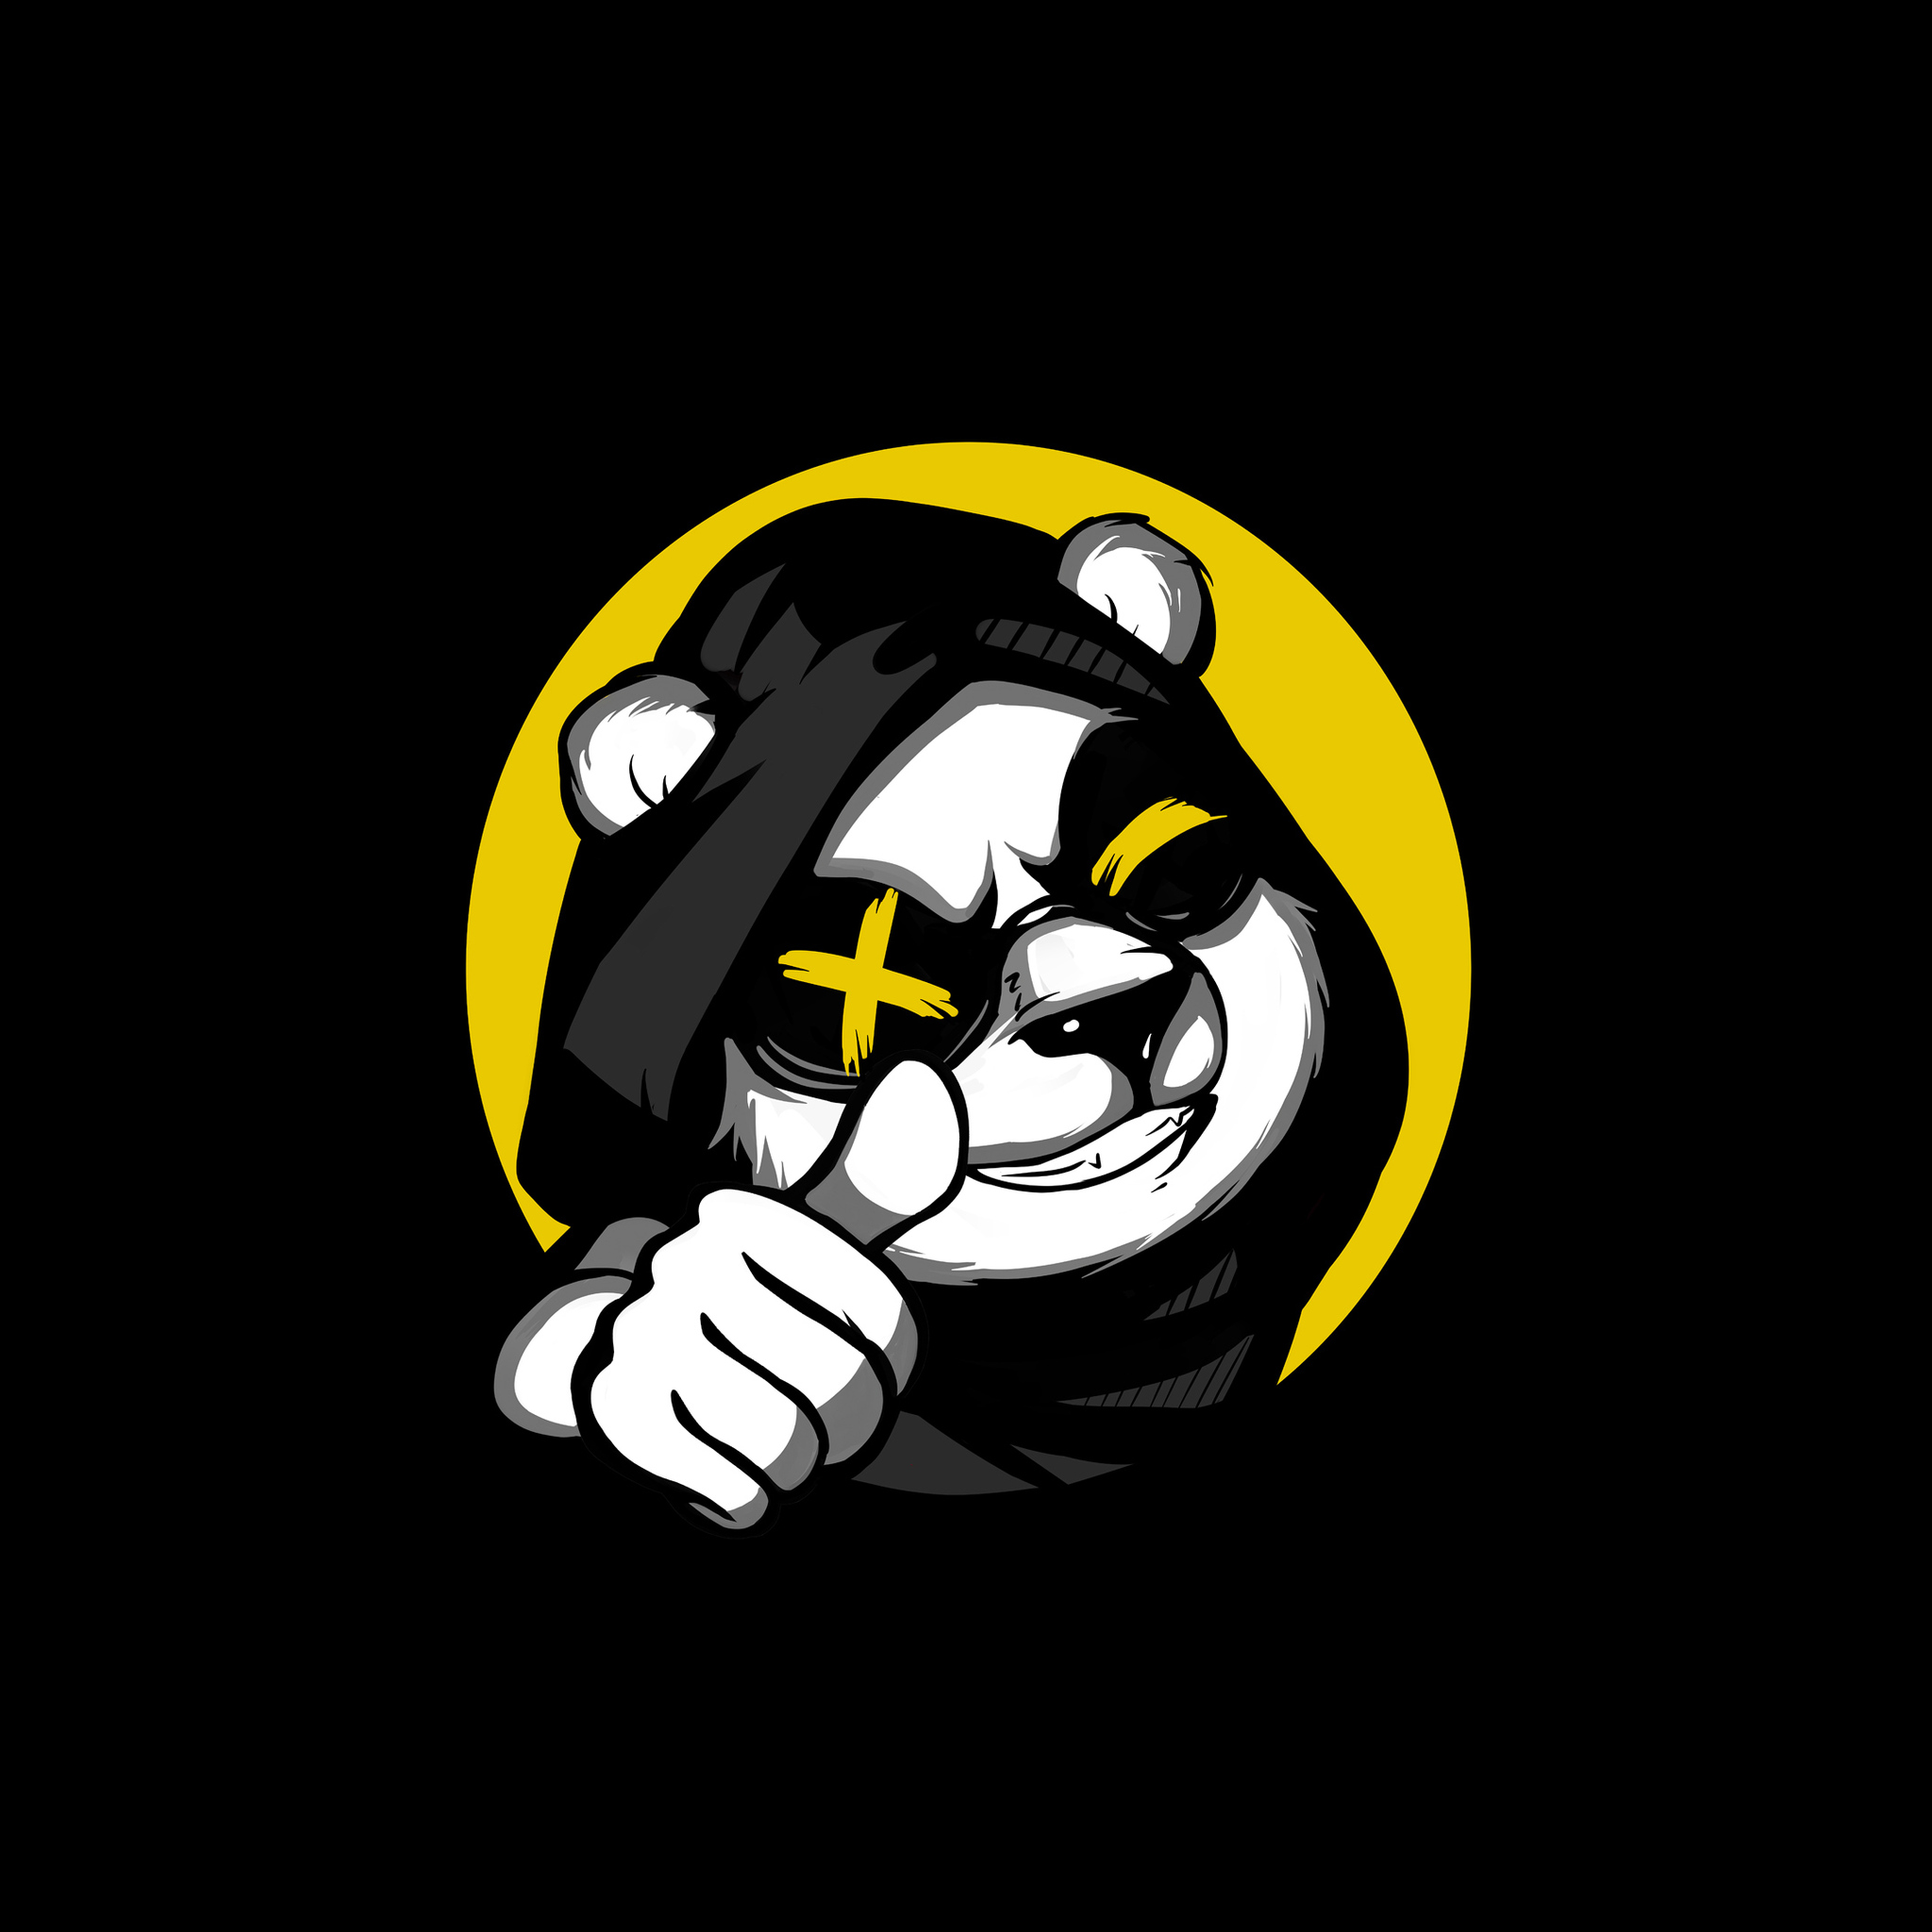 2048x2048 Cool Panda Thumb Up Minimal 4k Ipad Air Hd 4k Wallpapers Images Backgrounds Photos And Pictures